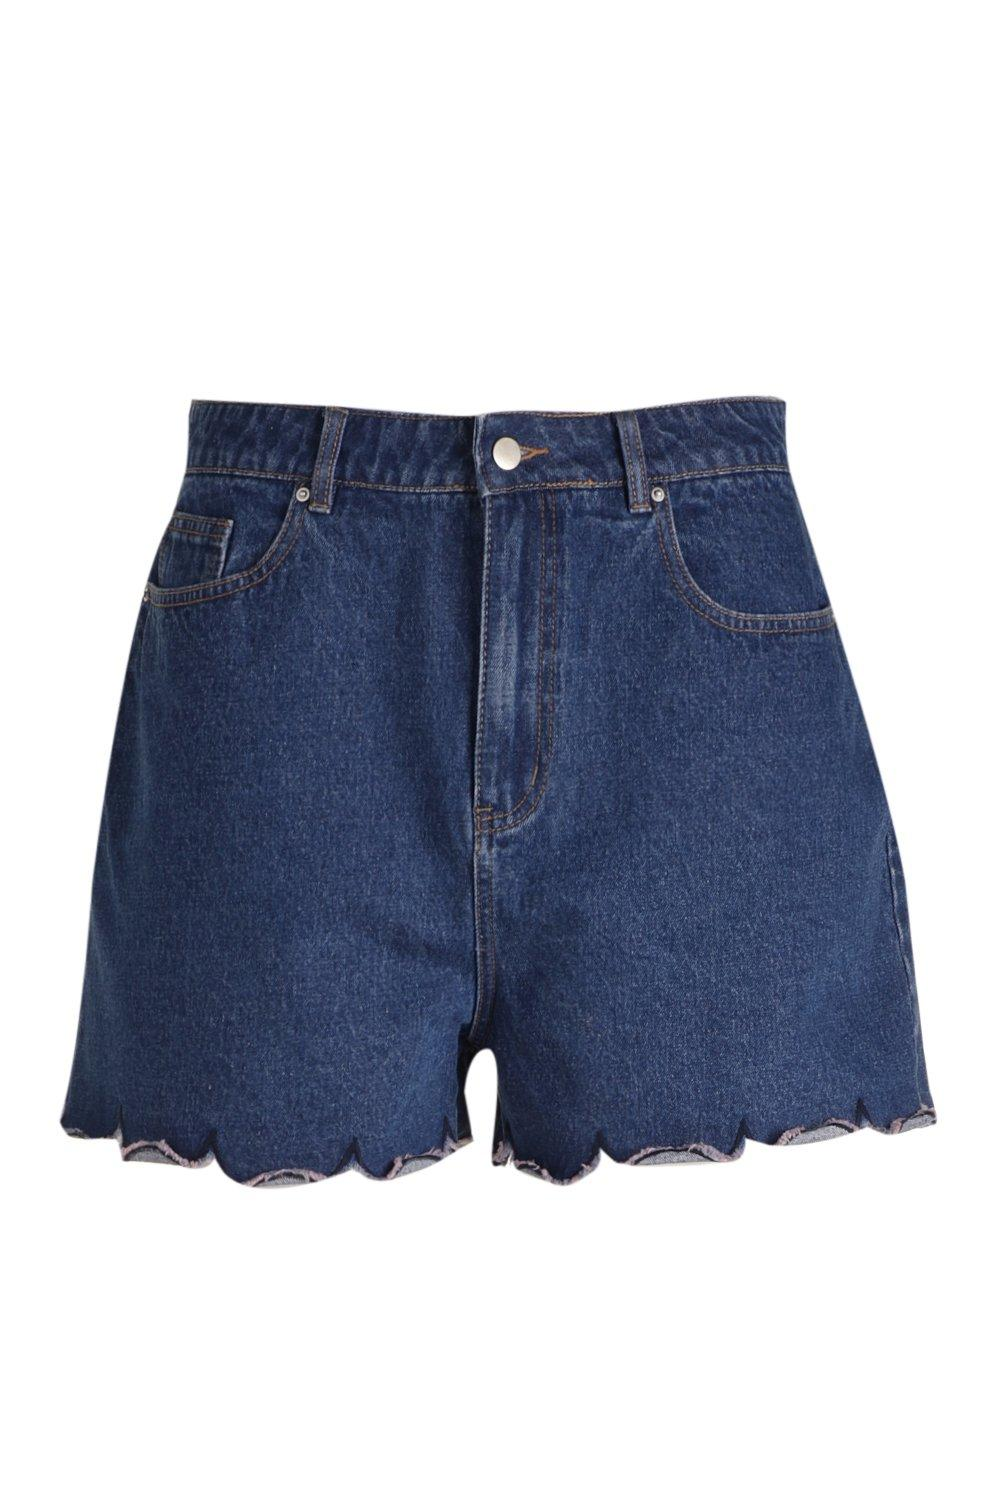 bajo Plus medio Denim cortos Azul Scallop Pantalones con TO6vwqt